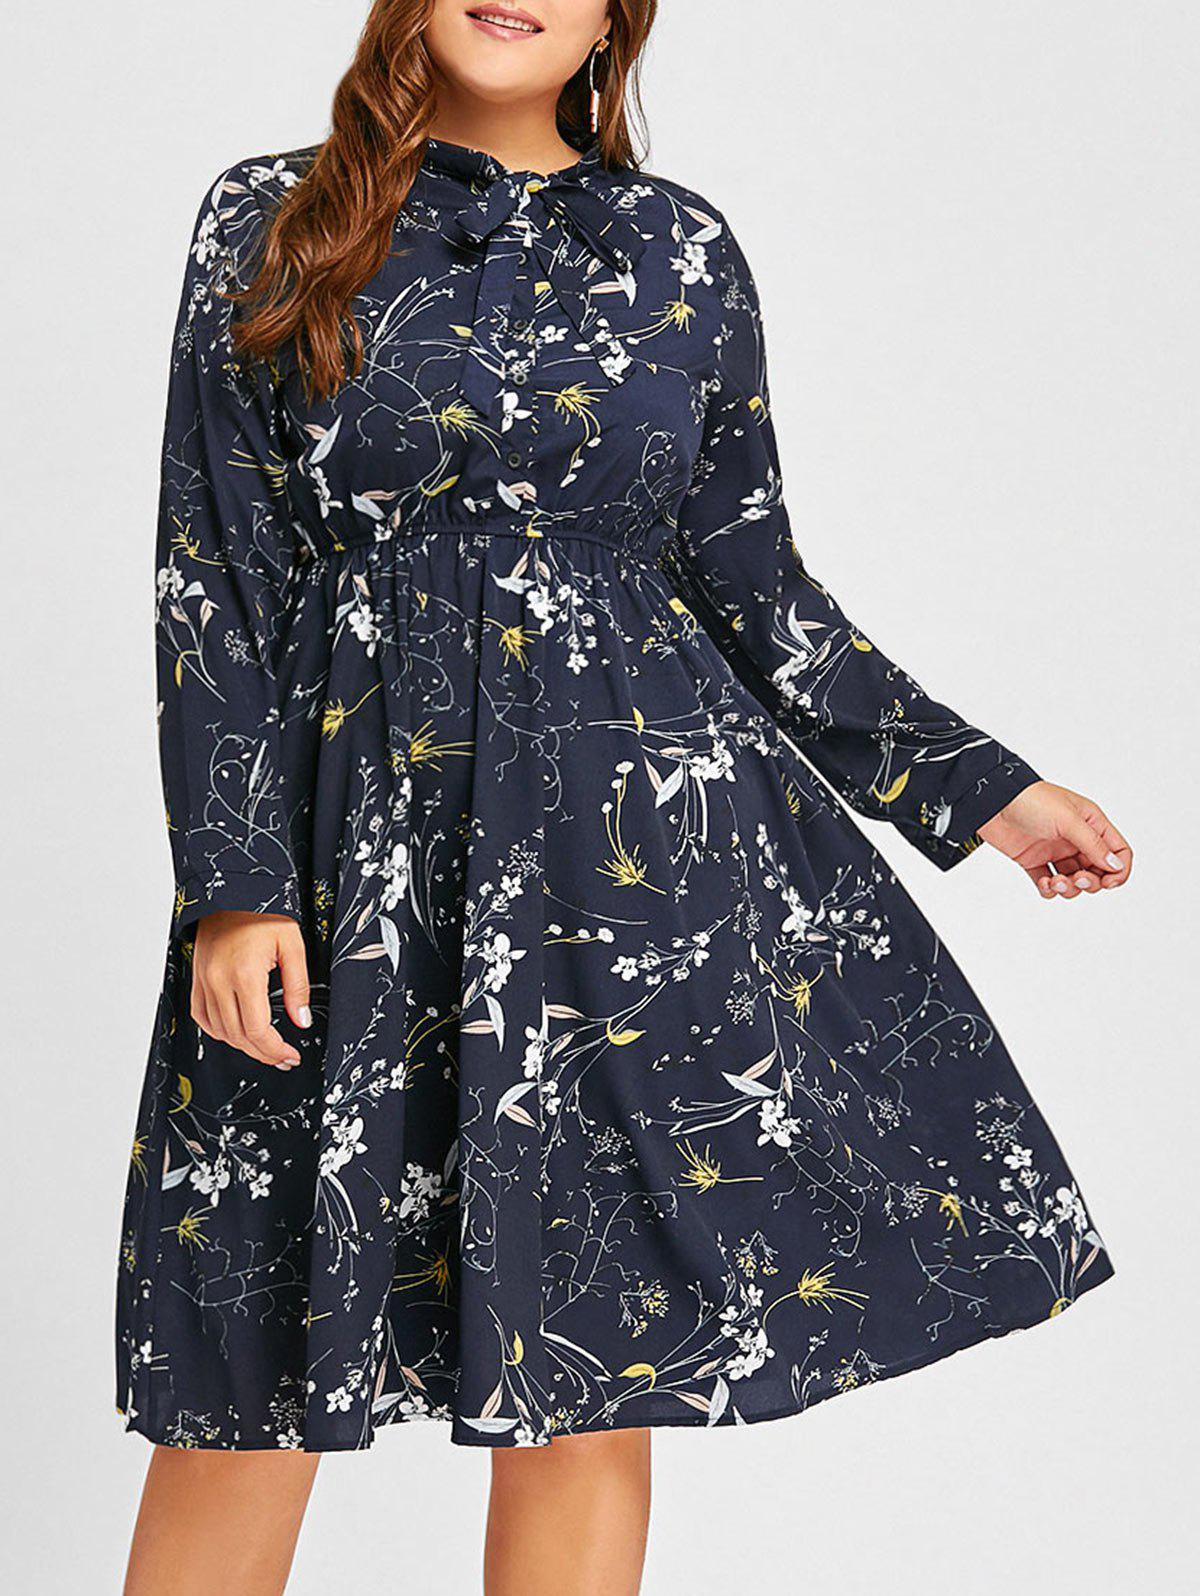 Plus Size Bowknot Floral Print DressWOMEN<br><br>Size: 3XL; Color: PURPLISH BLUE; Style: Casual; Material: Polyester; Silhouette: A-Line; Dresses Length: Knee-Length; Neckline: Shirt Collar; Sleeve Length: Long Sleeves; Embellishment: Bowknot,Button; Pattern Type: Floral; With Belt: No; Season: Fall,Spring; Weight: 0.3500kg; Package Contents: 1 x Dress;